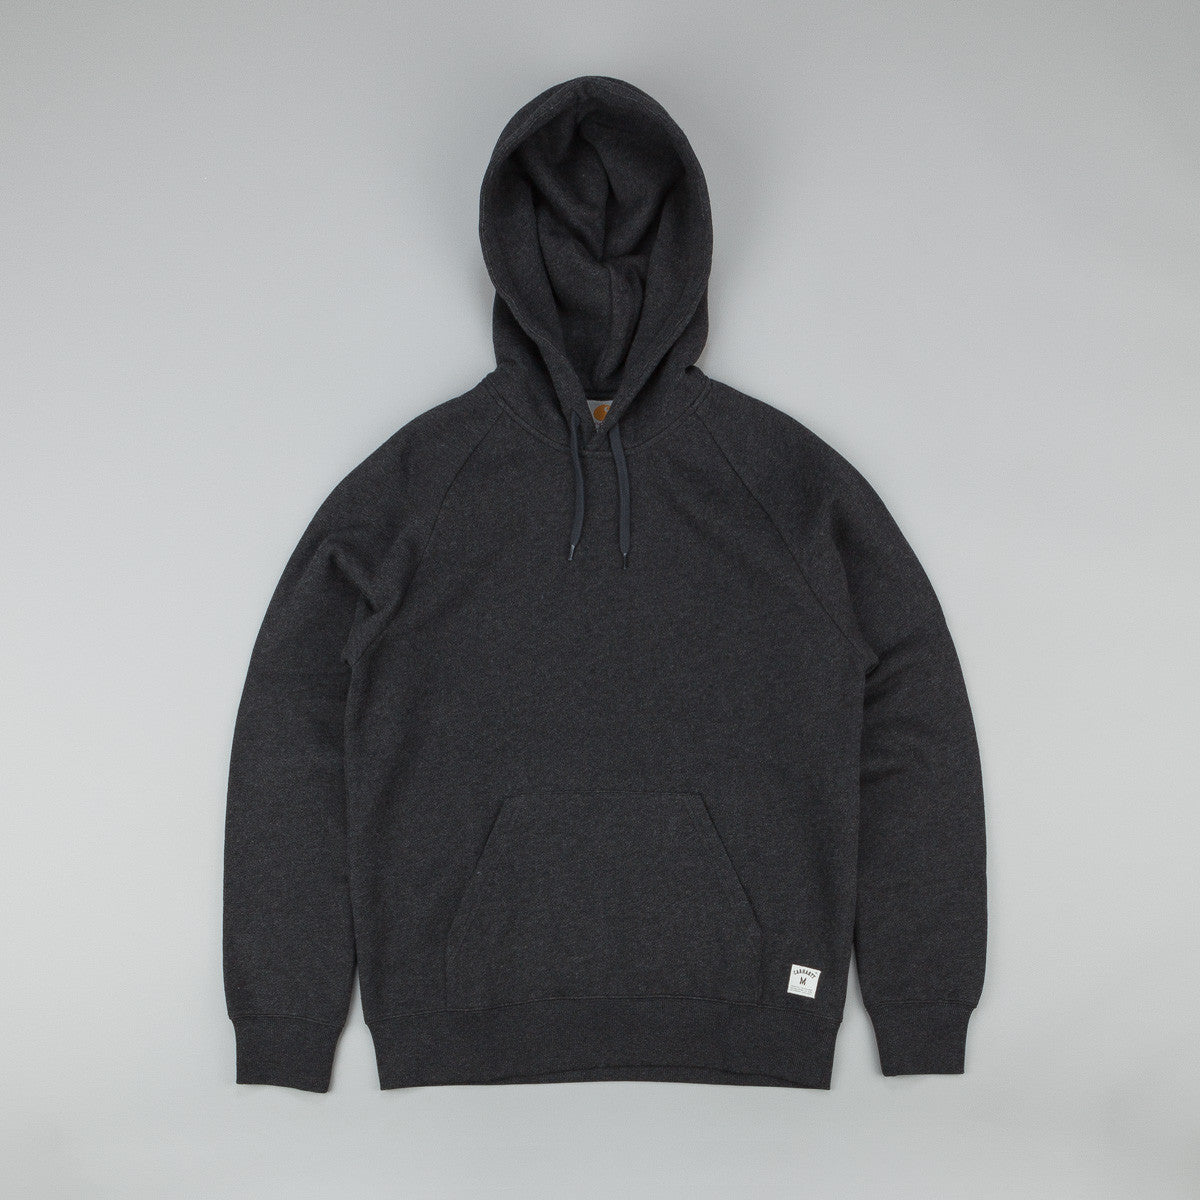 Carhartt Hooded Holbrook Sweatshirt - Black Heather